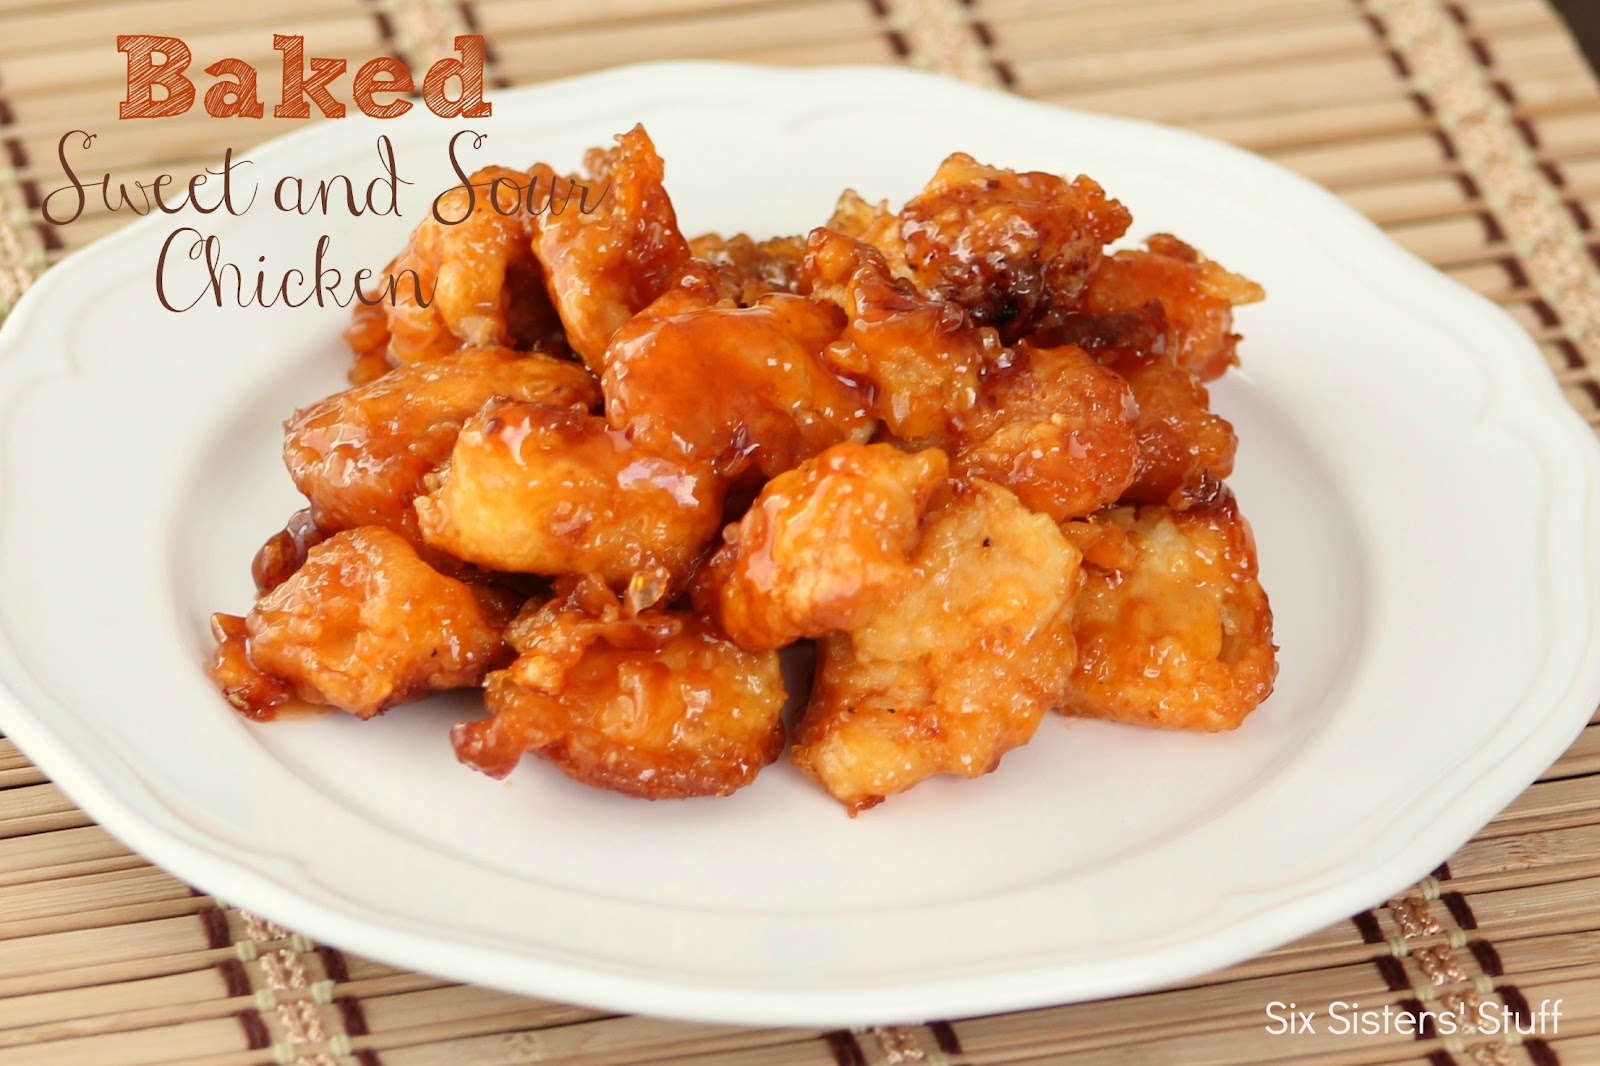 Baked sweet and sour chicken recipe six sisters stuff forumfinder Choice Image